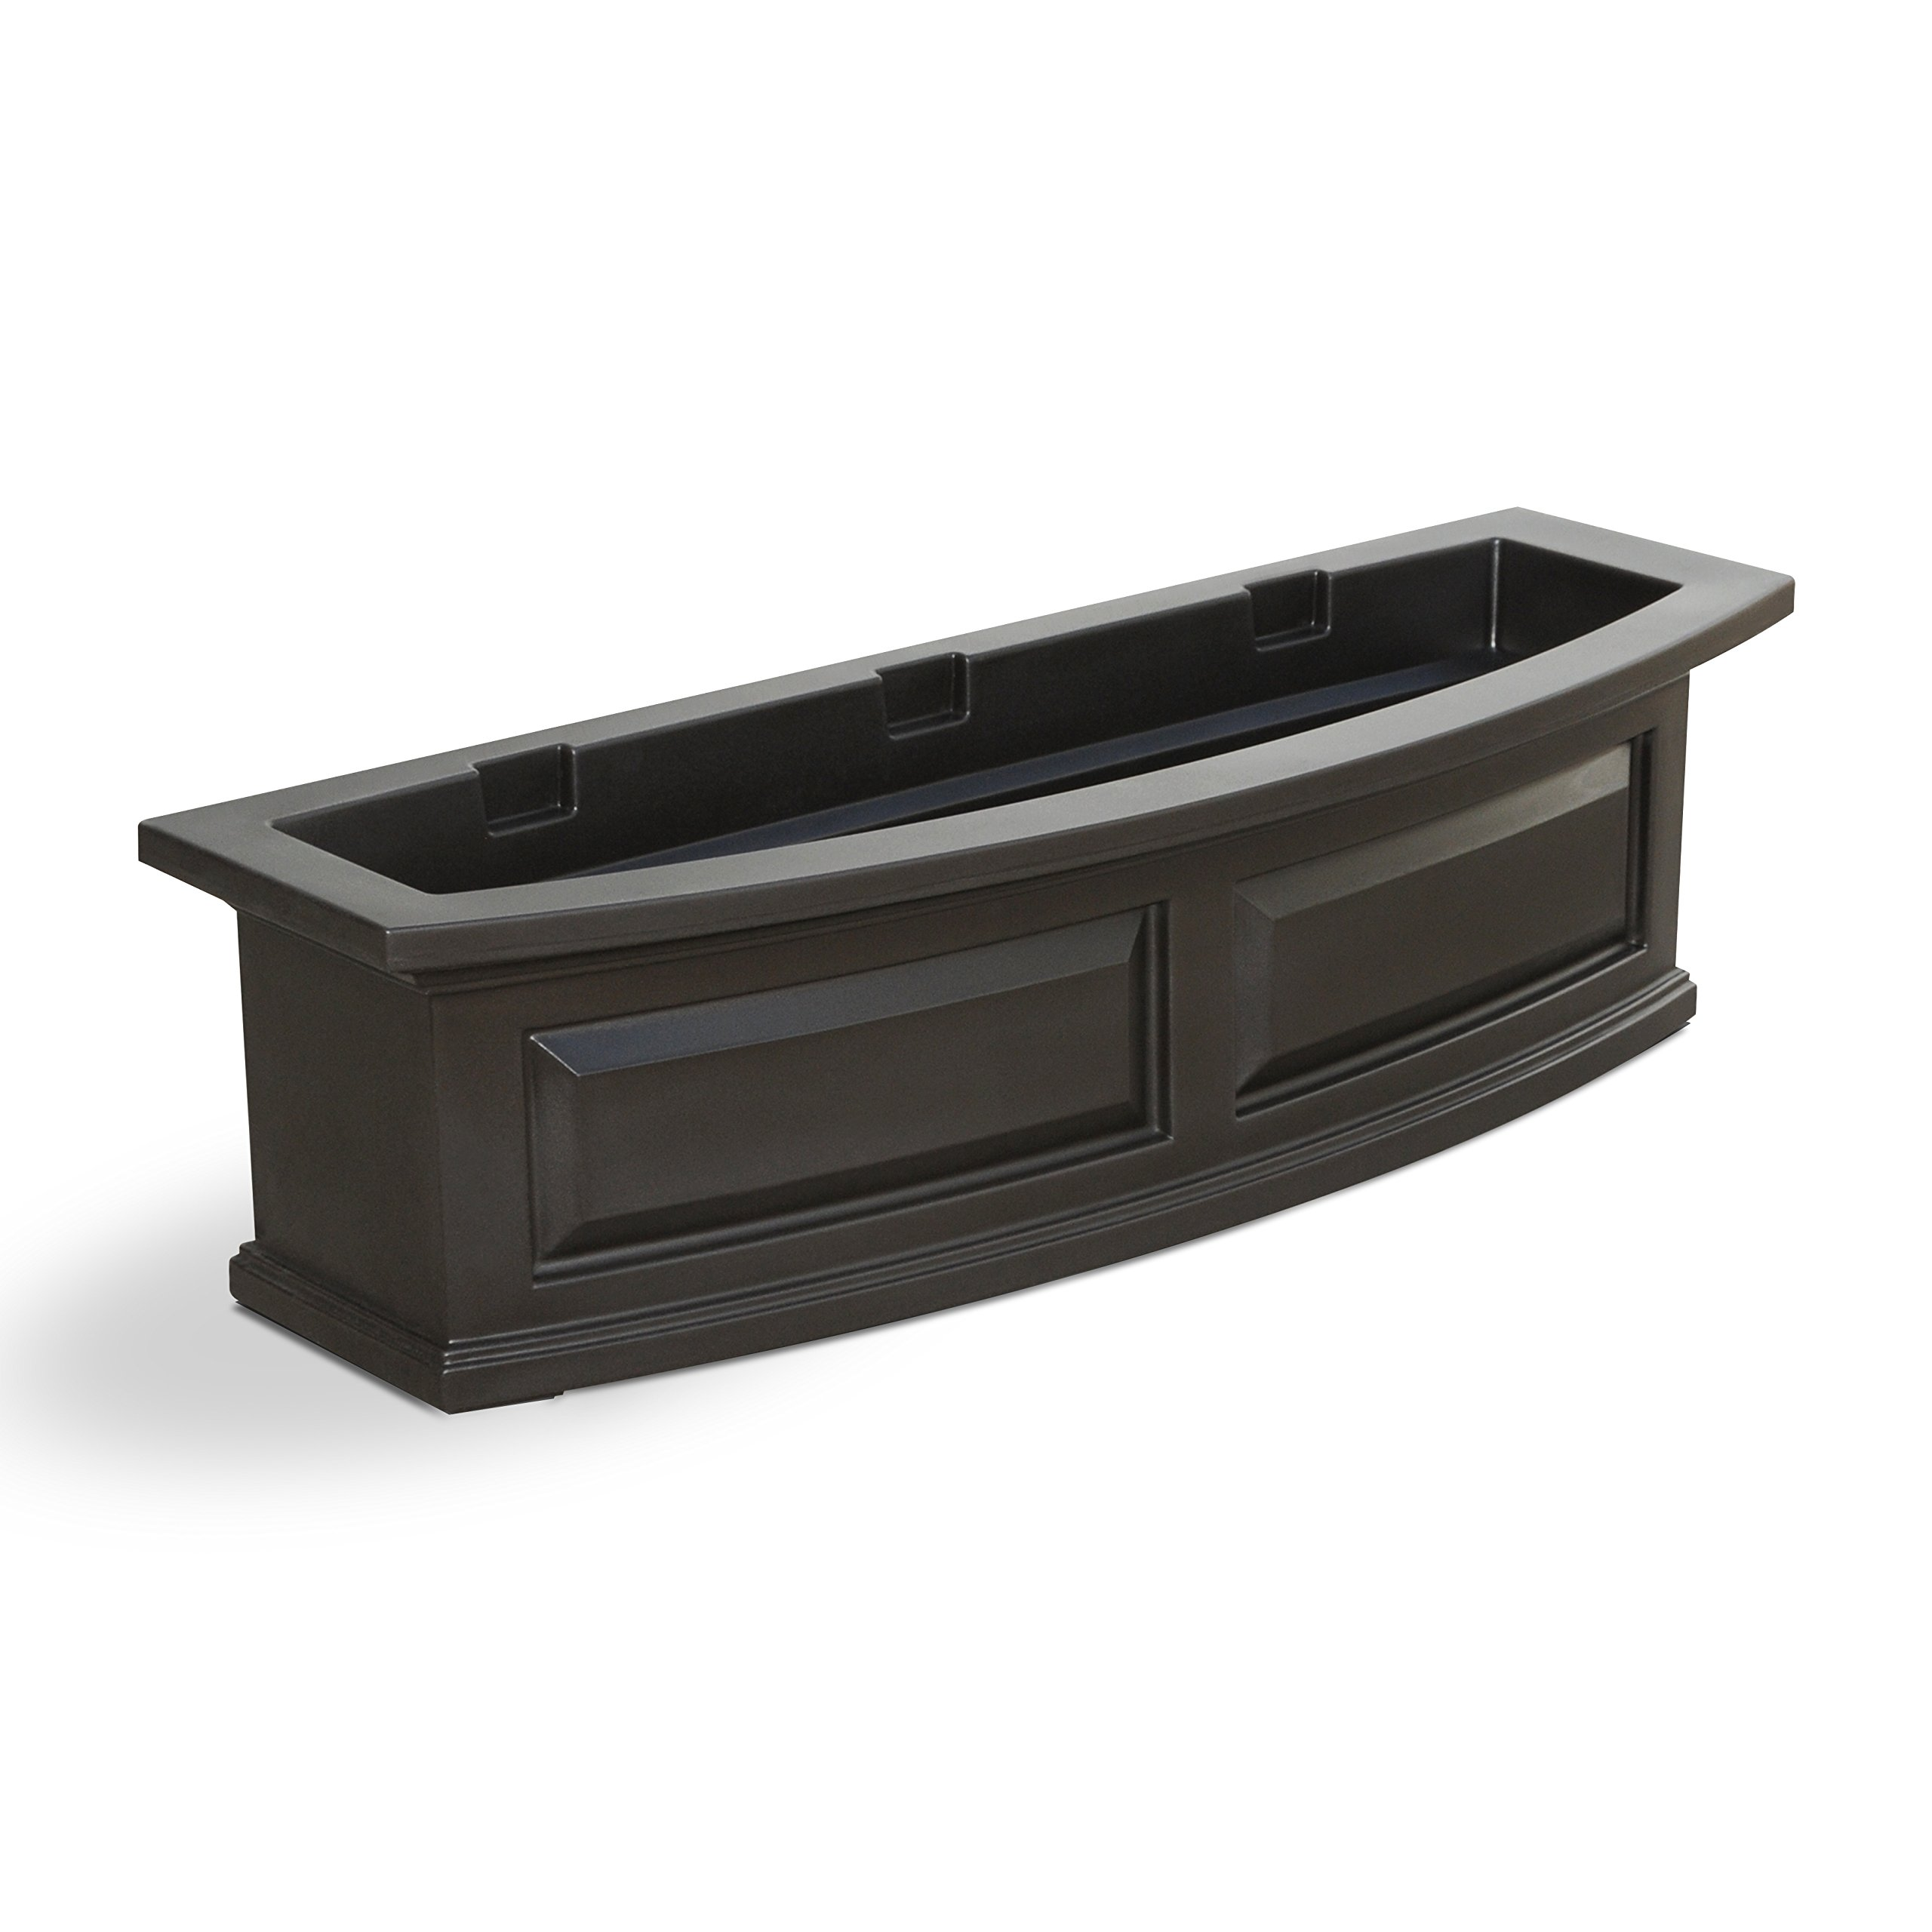 Mayne 4830-ES Polyethylene Window Box, Espresso by Mayne